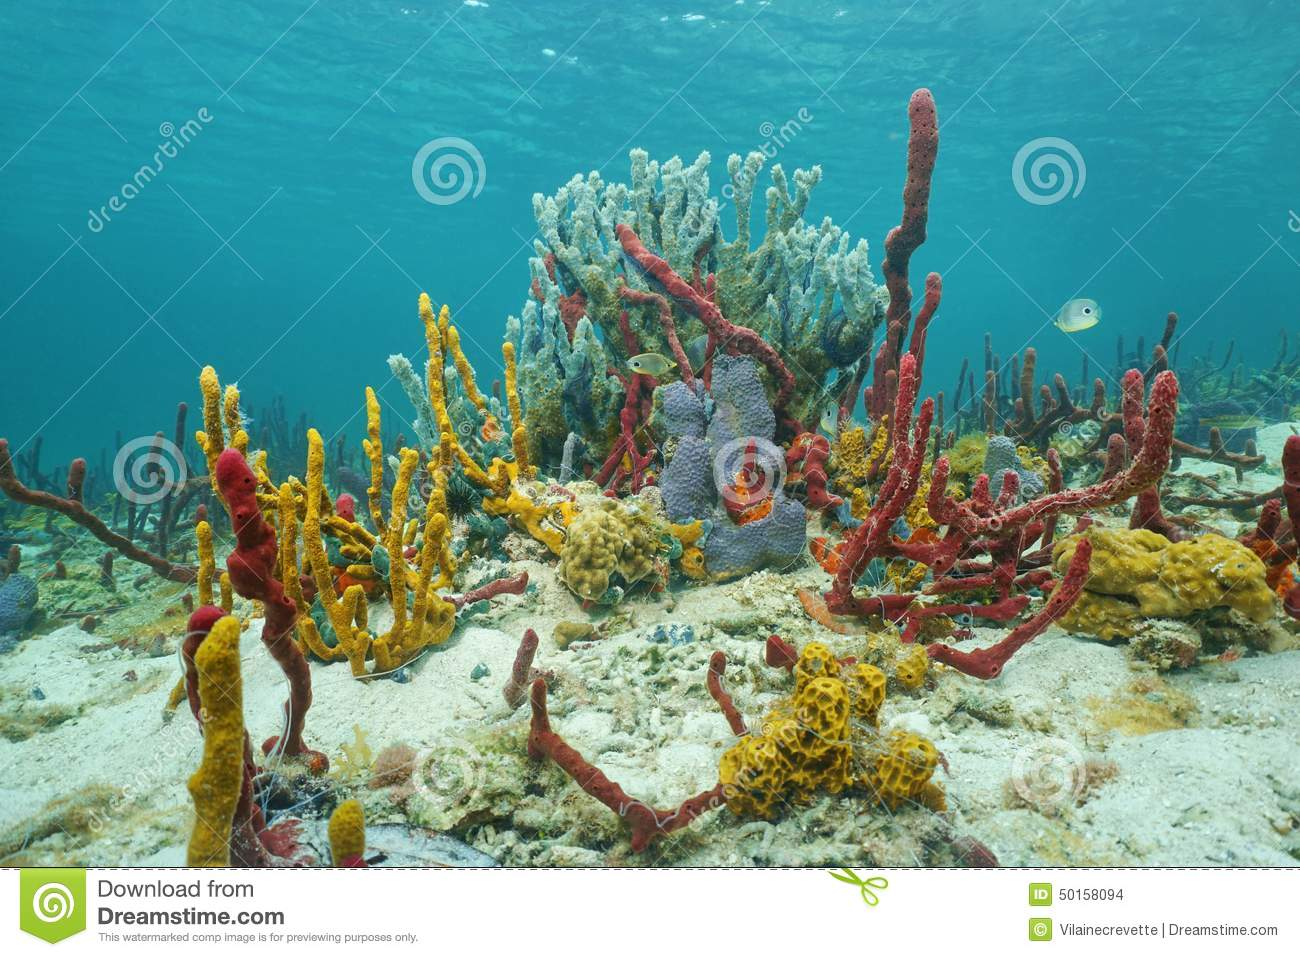 Vibrant Caribbean: Vibrant Underwater Life With Sea Sponges On Seabed Stock